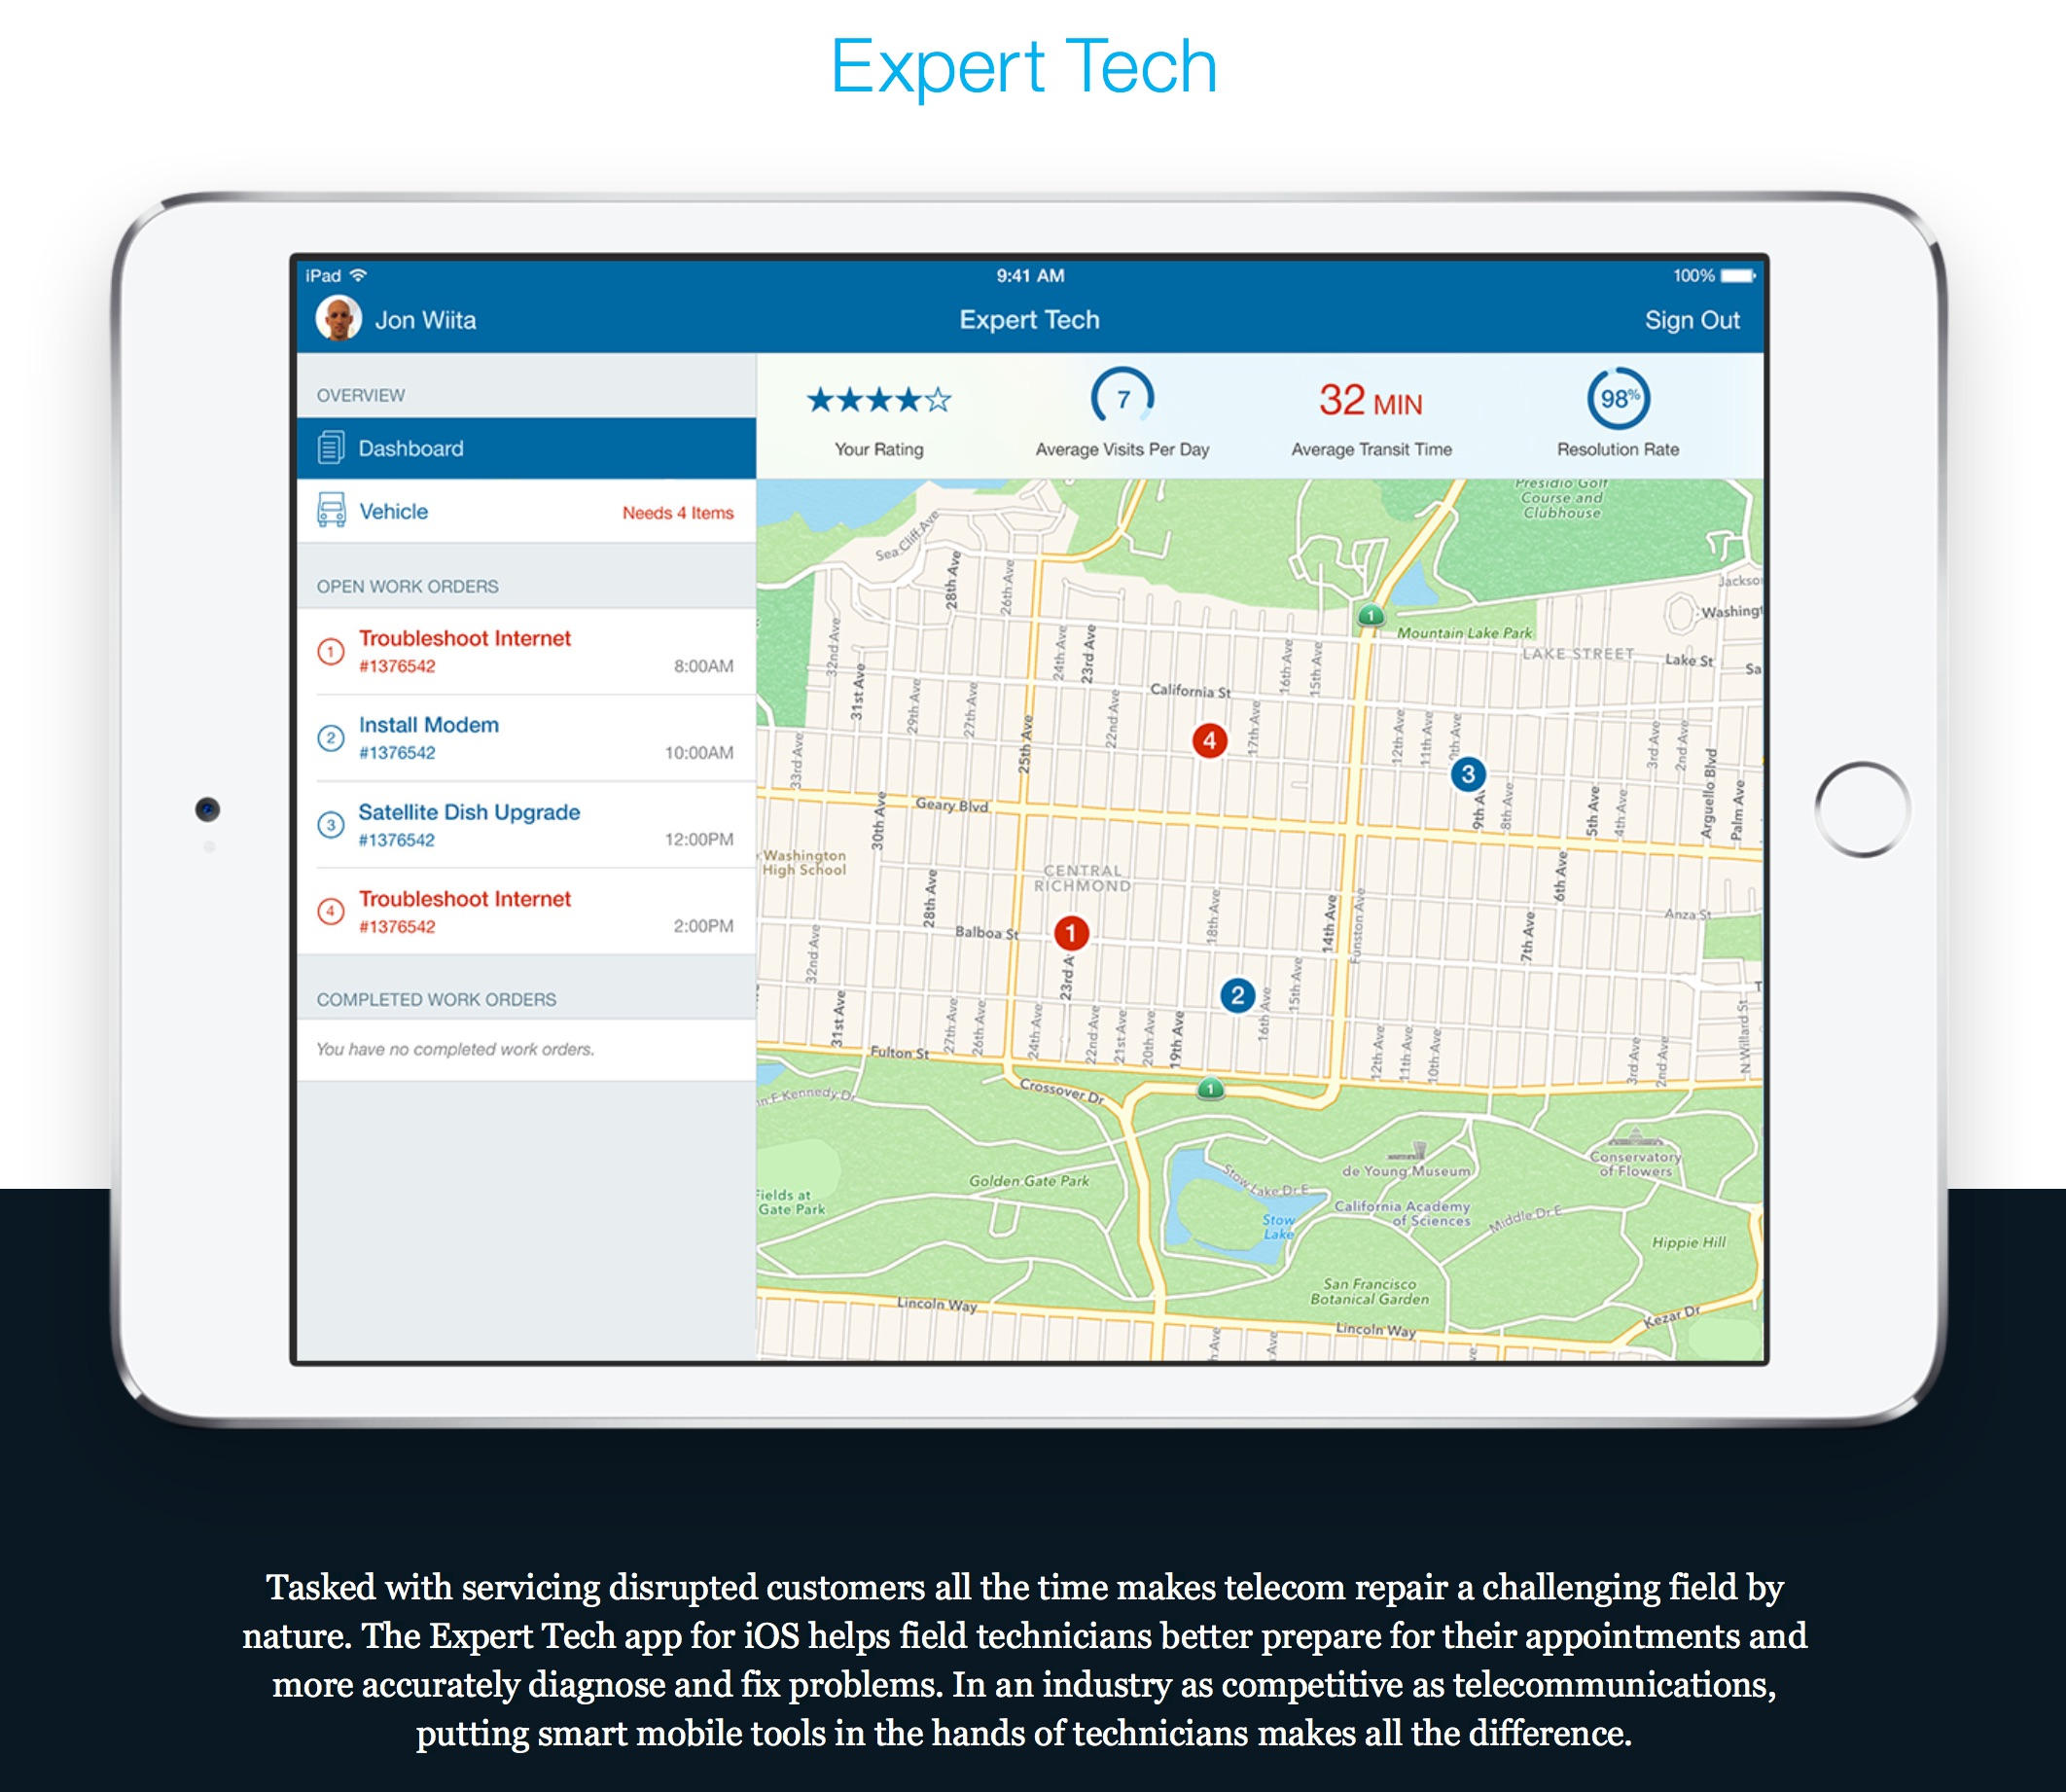 A sample of one of IBM's new enterprise apps currently under development.